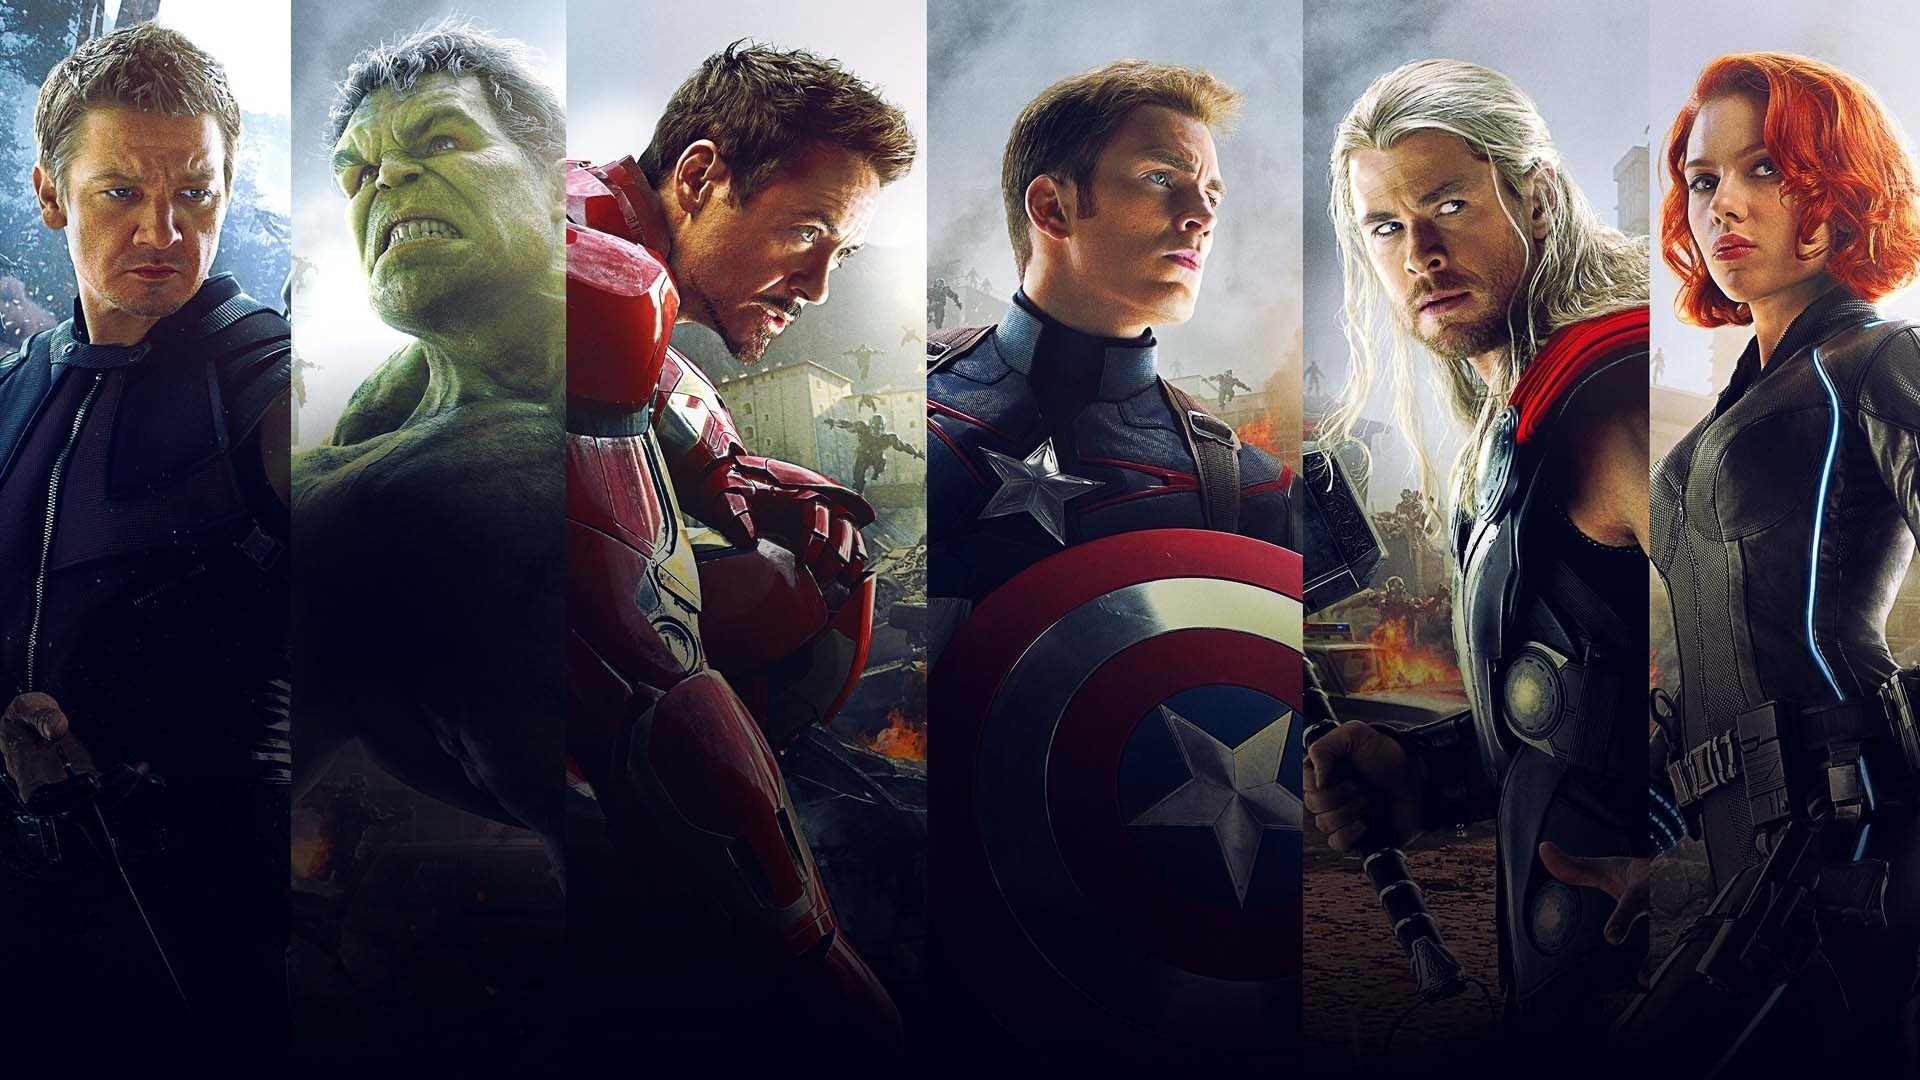 the avengers wallpapers 1920x1080 full hd (1080p) desktop backgrounds